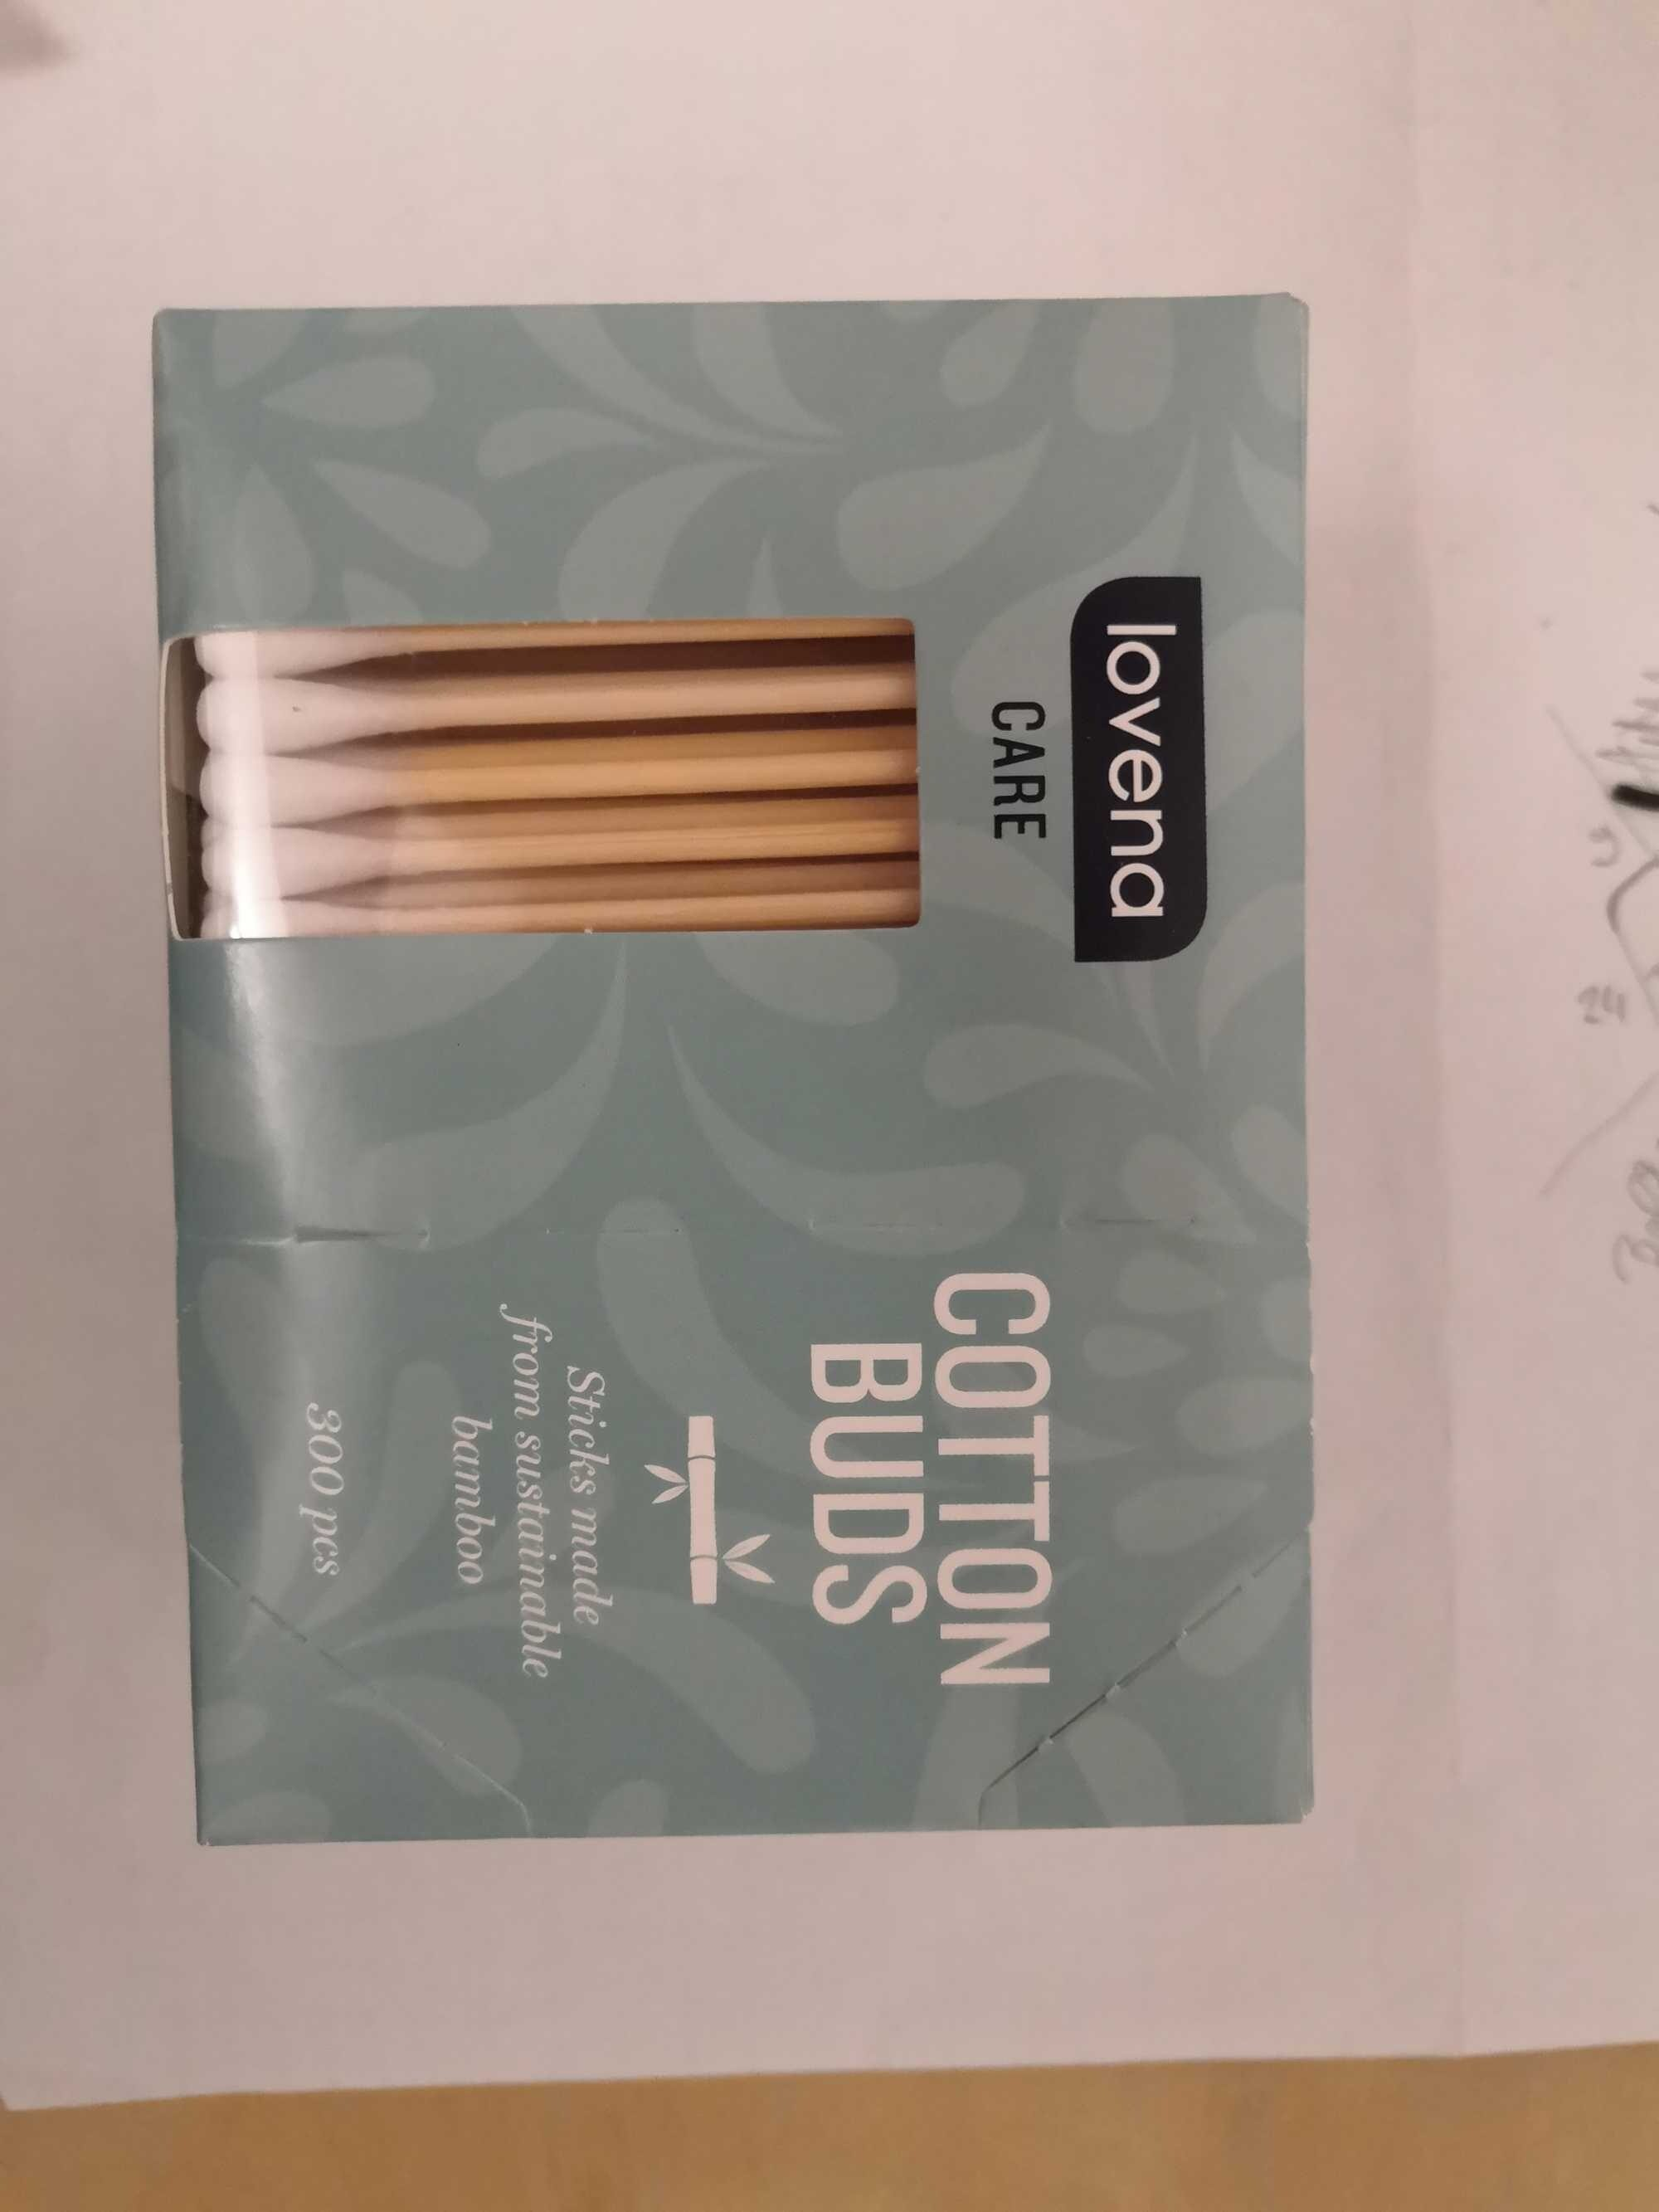 lovena Care Cotton Buds - Product - de